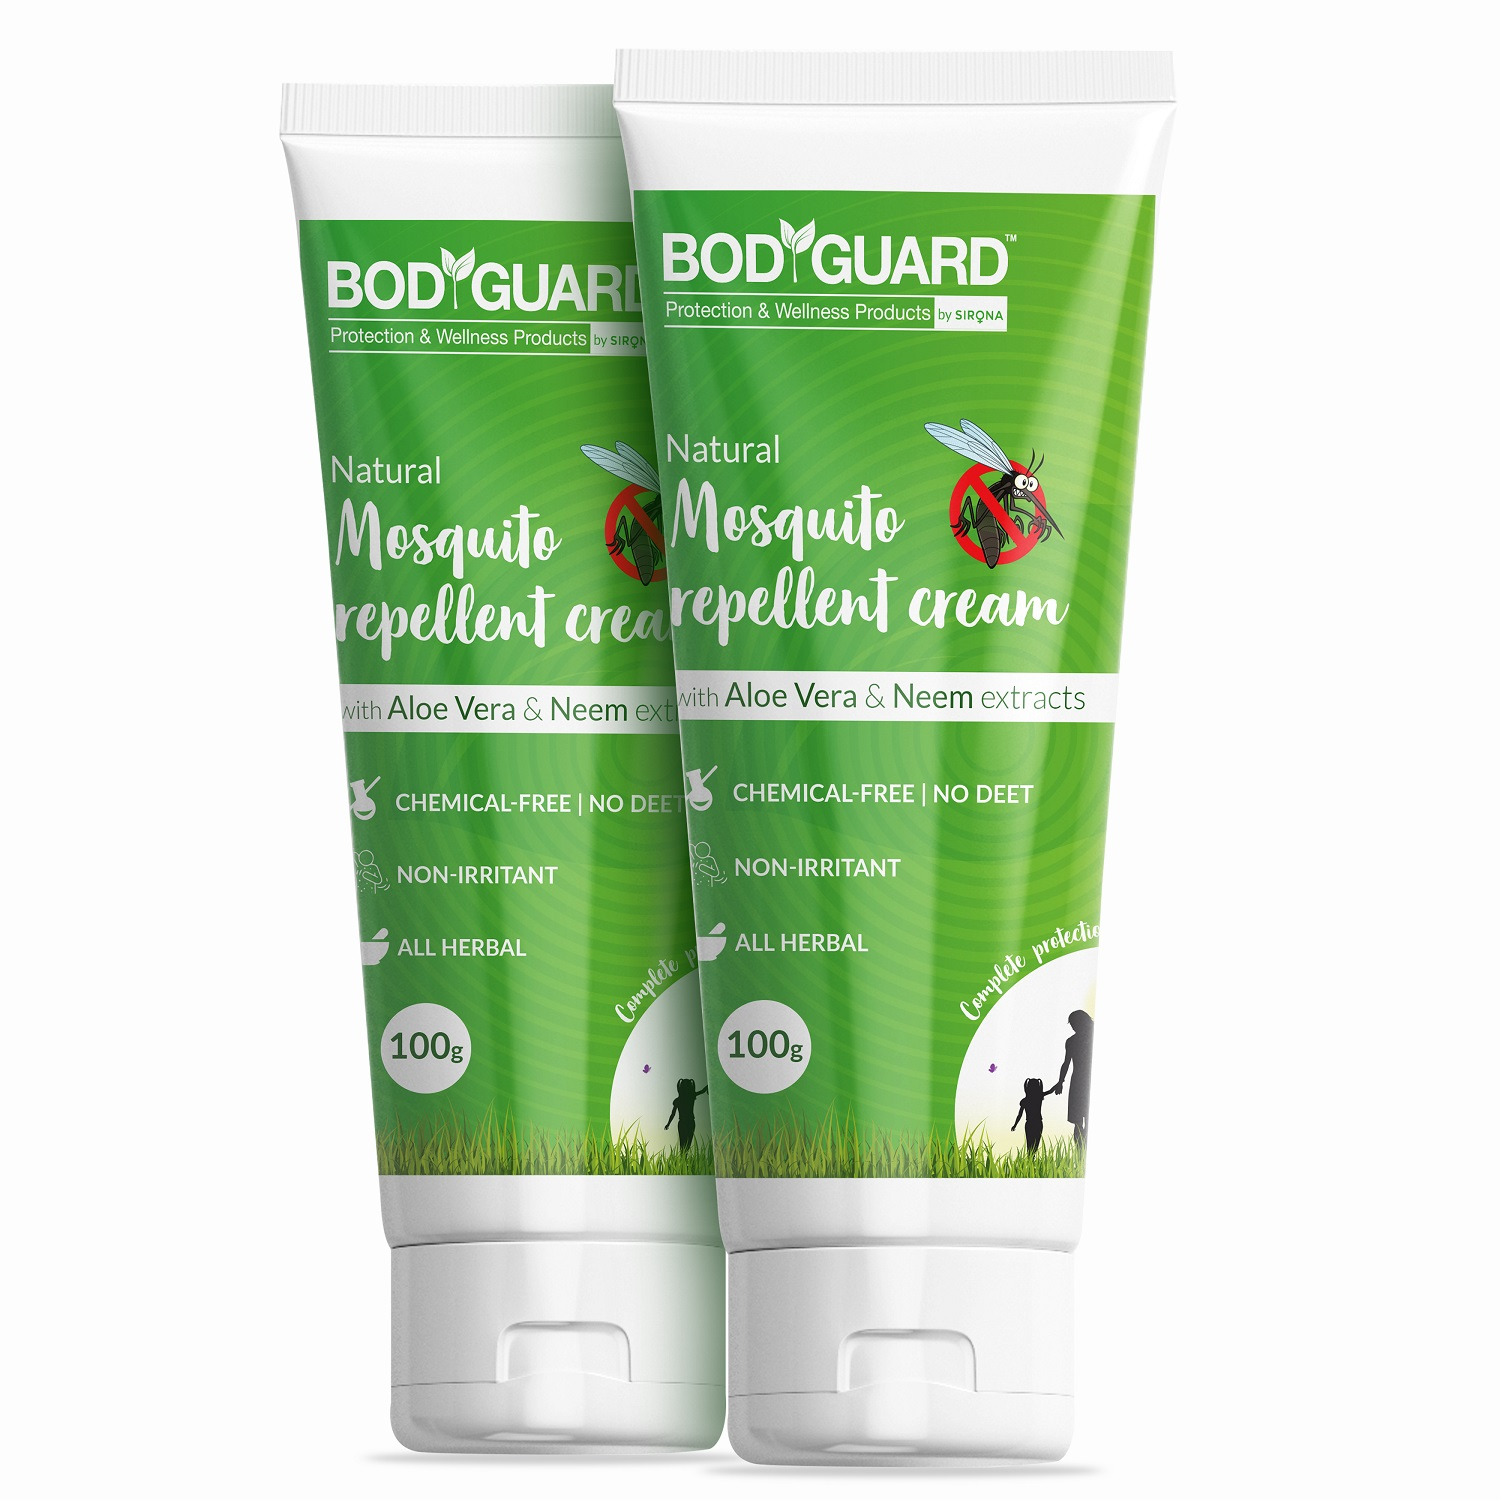 BodGuard Natural Mosquito Repellent Cream with Aloe Vera and Neem Extracts - 100 gm (Pack of 2)